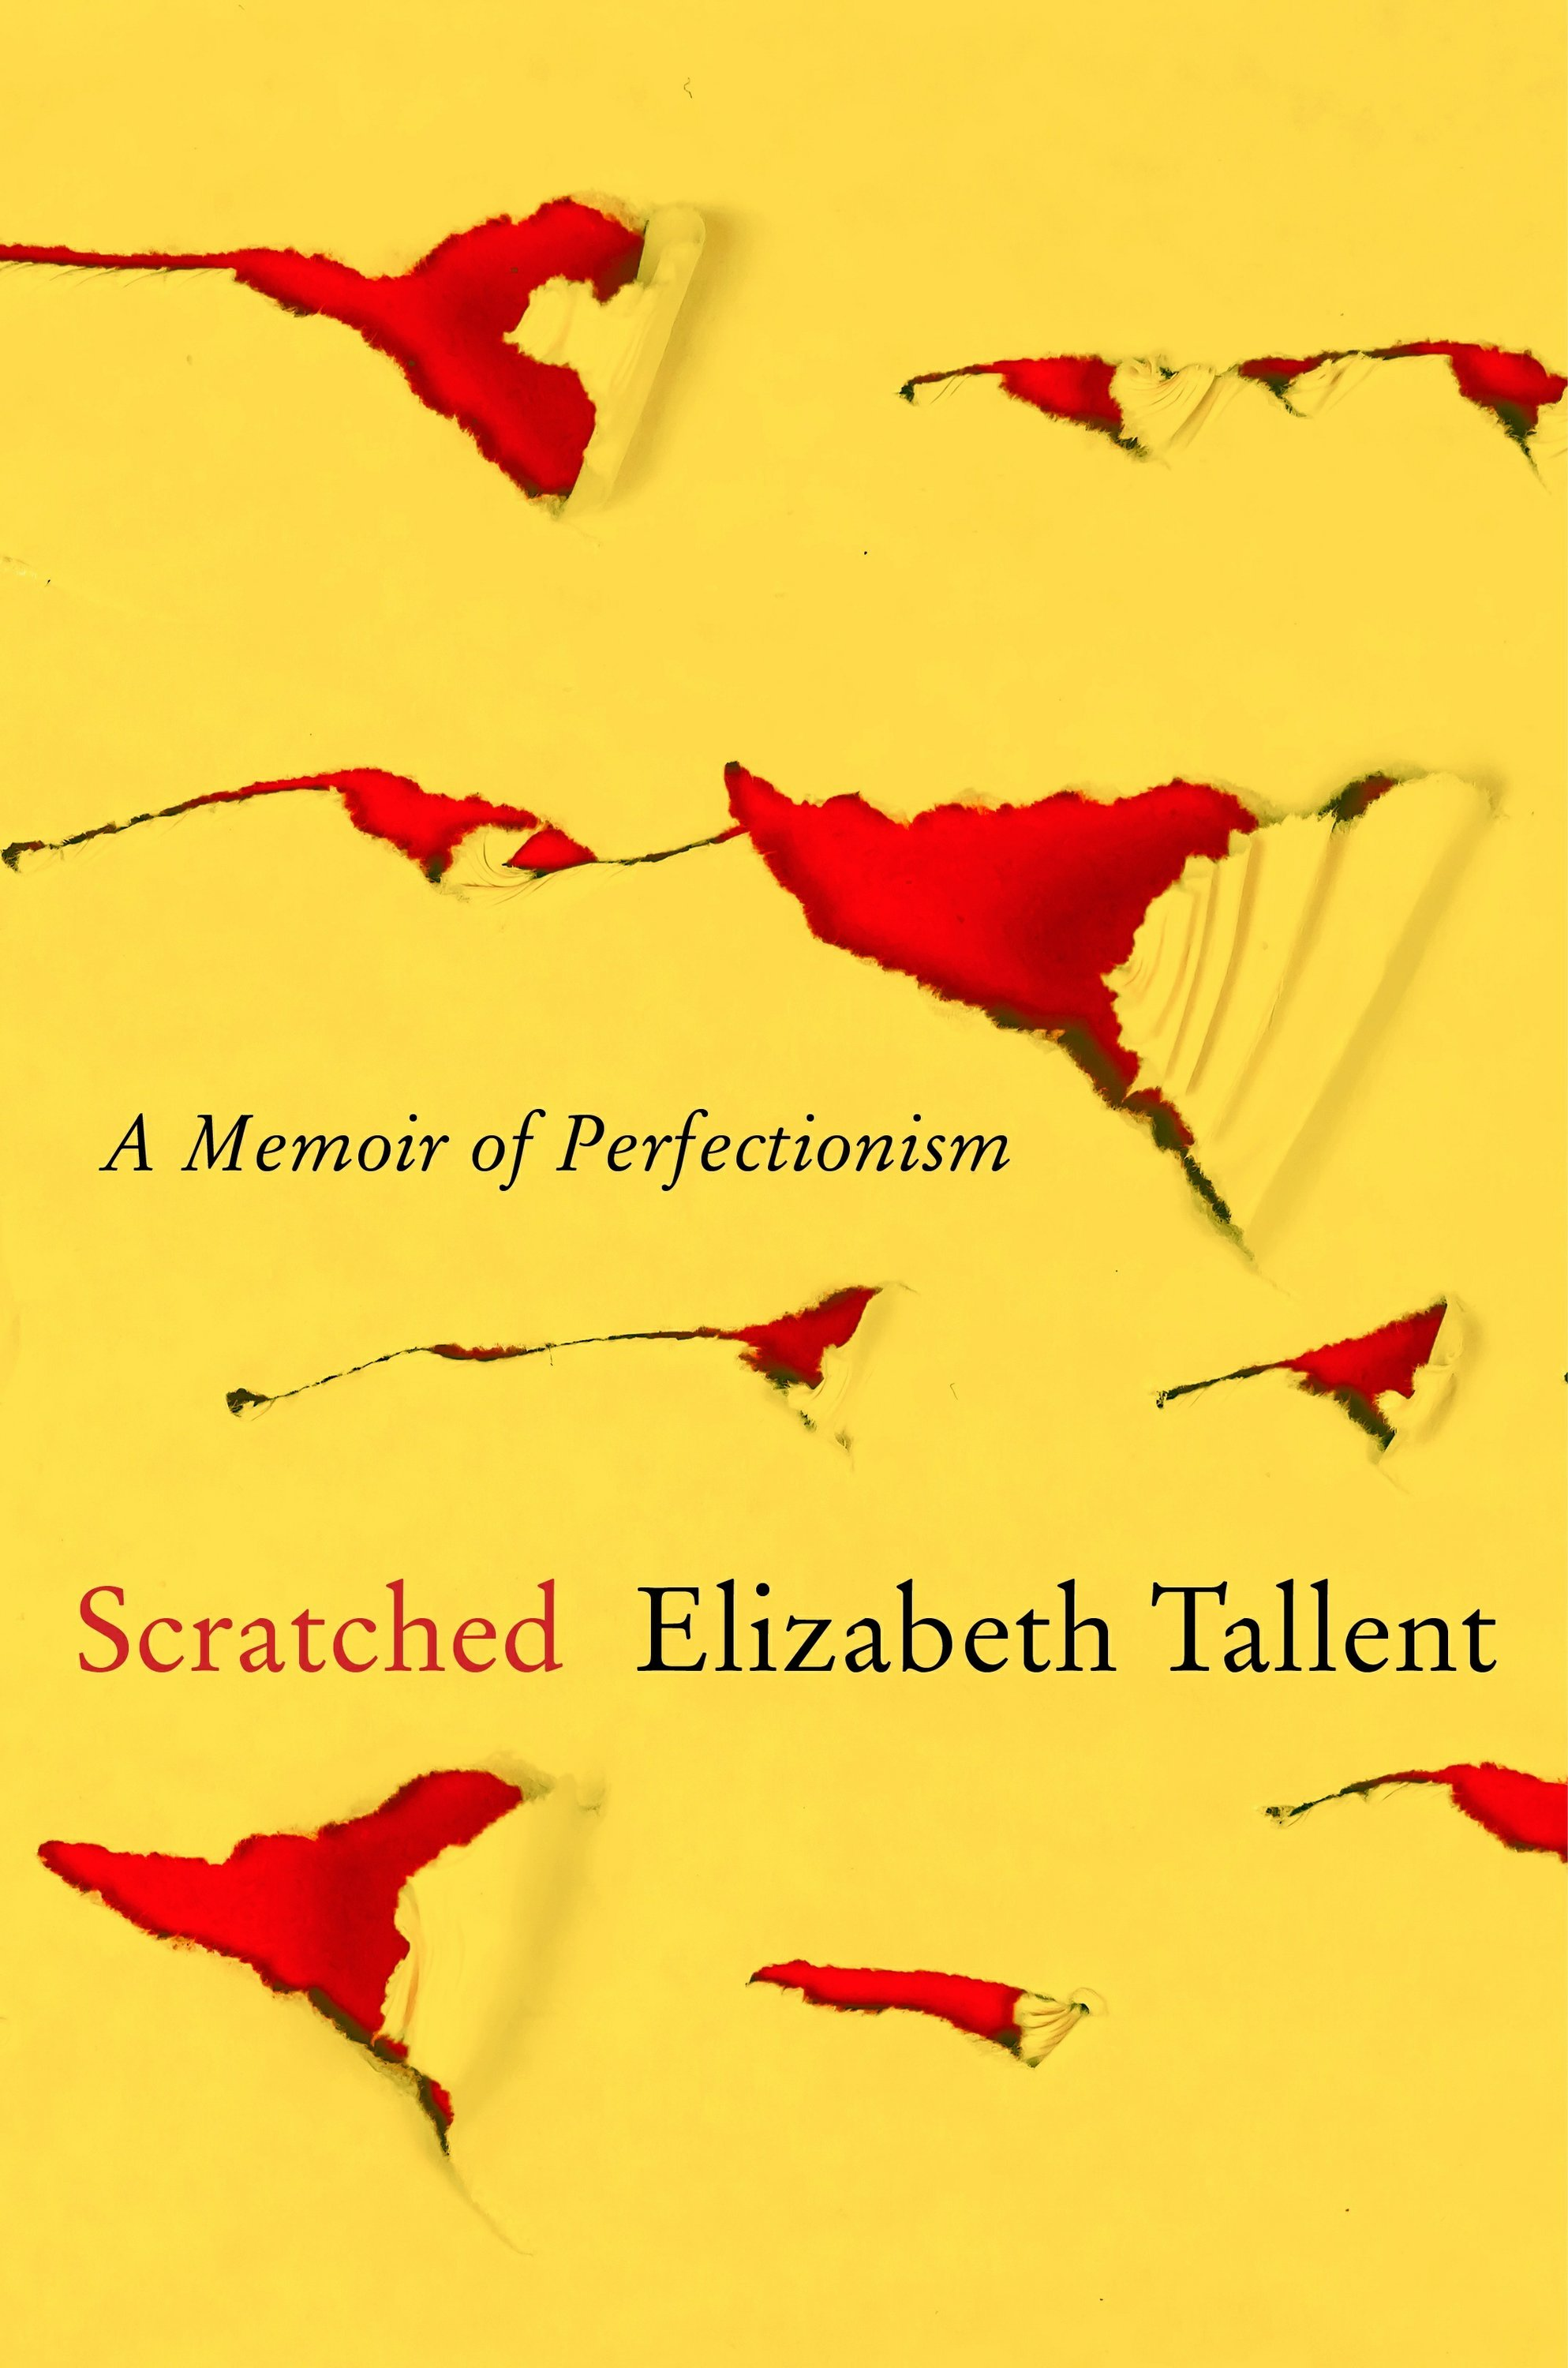 Review: Author tells story of overcoming perfectionism